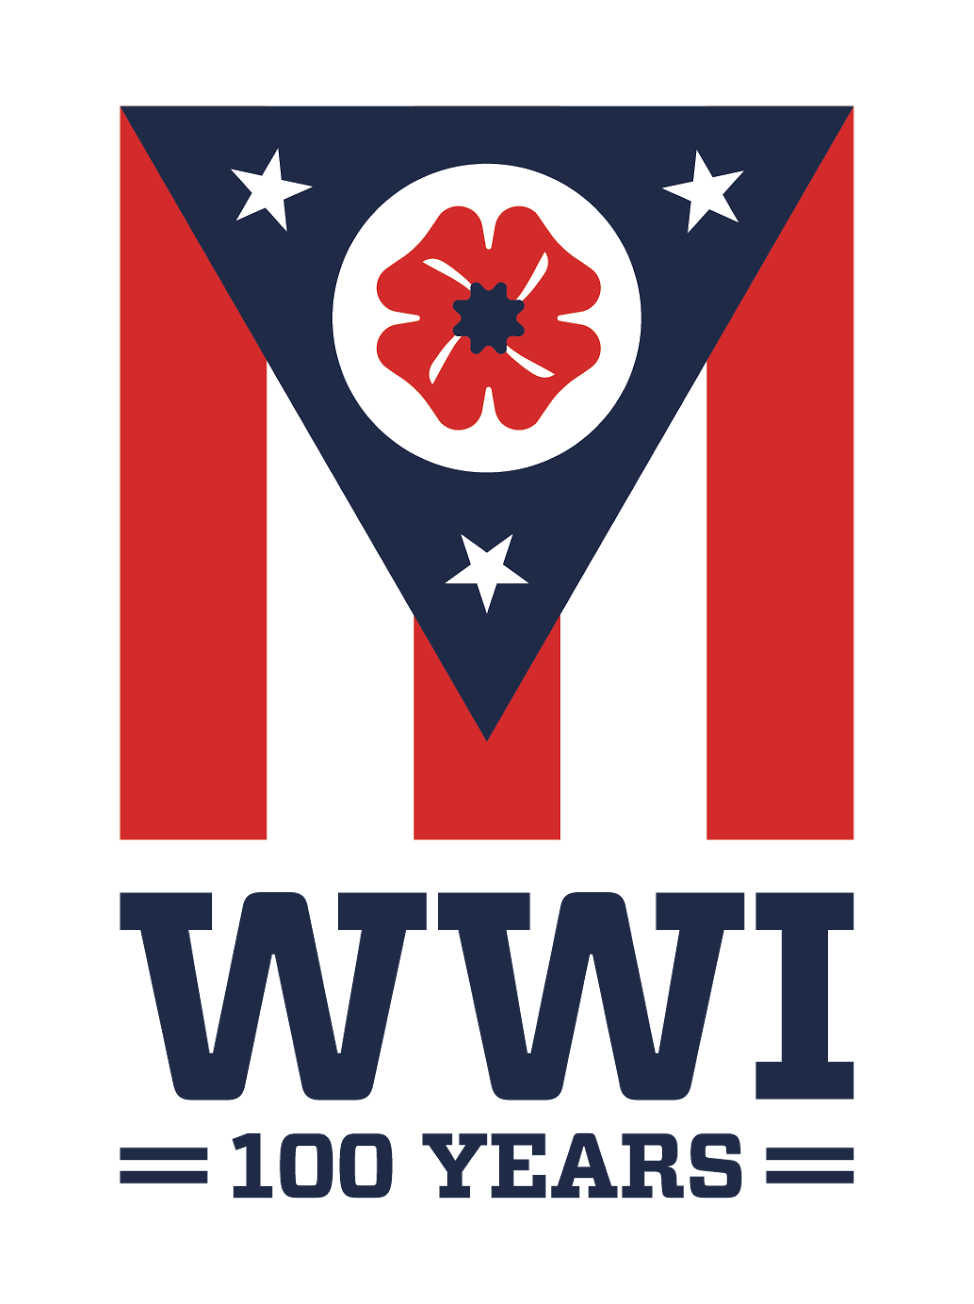 Ohio World War I Centennial Committee logo